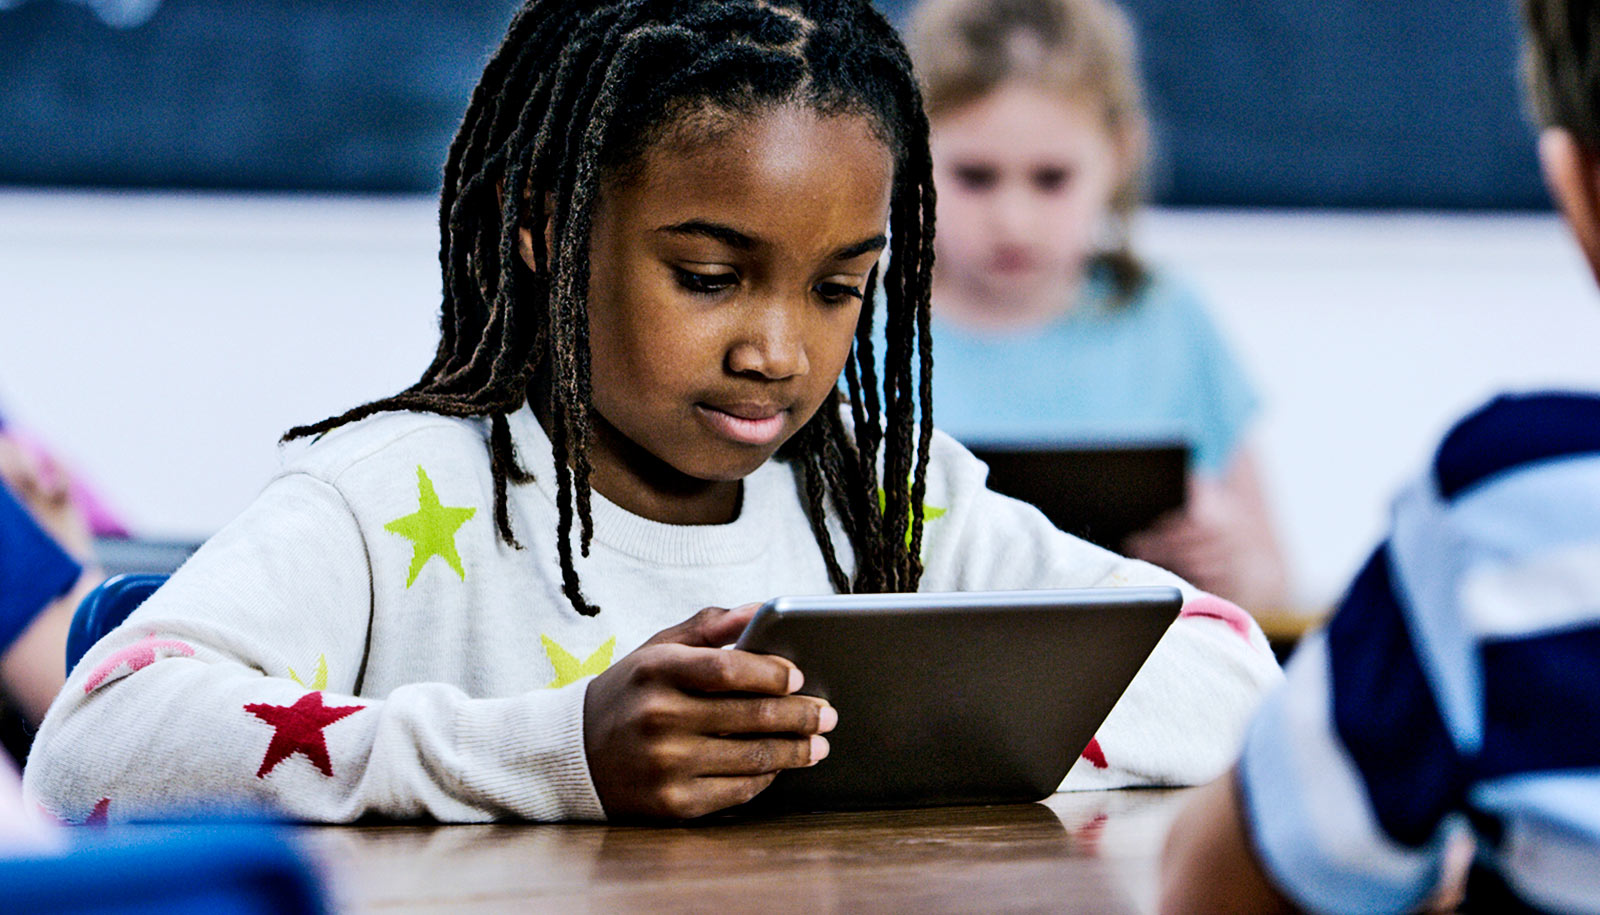 Tablets in classrooms are no magic fix - Futurity